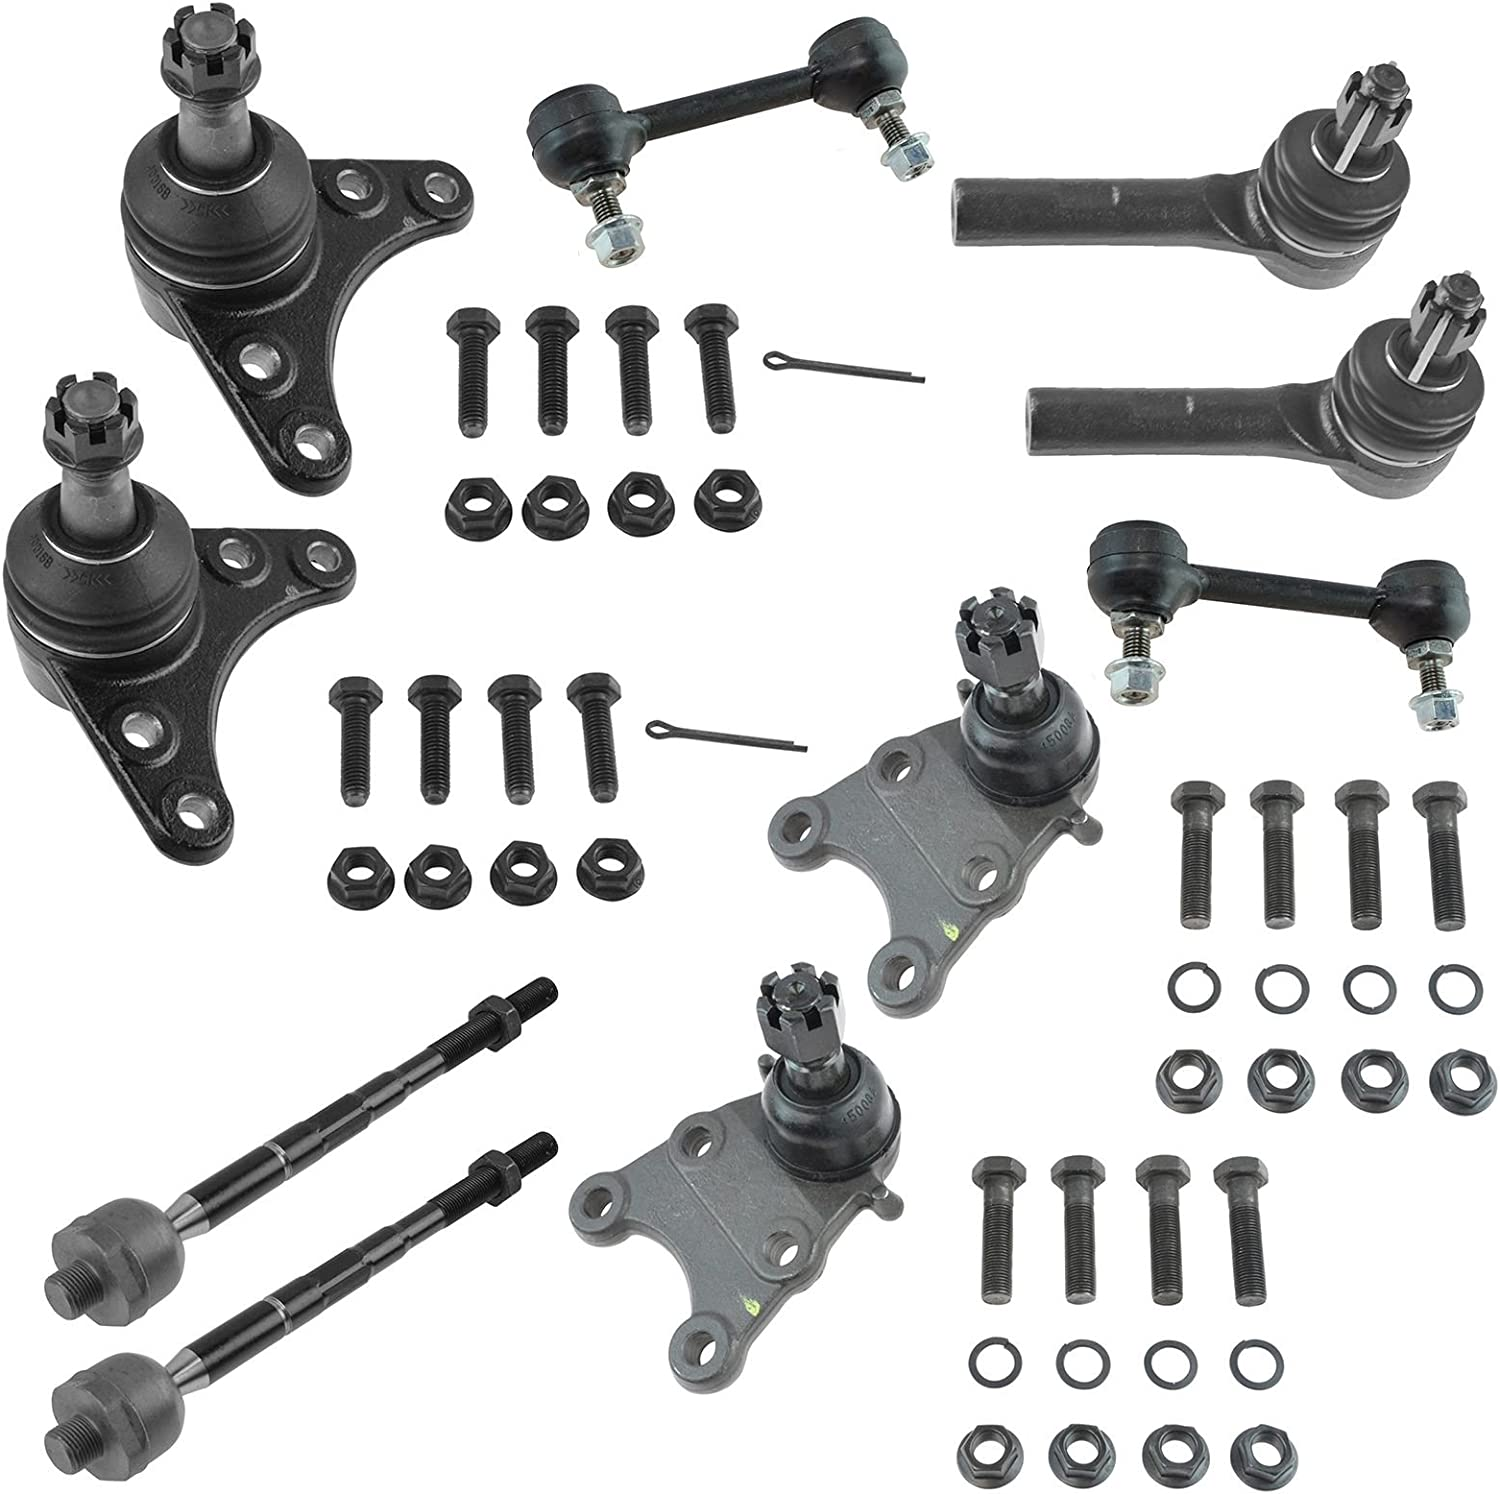 Steering Suspension Kit Front LH RH of Set 10 予約販売品 for Color Canyon 直営ストア